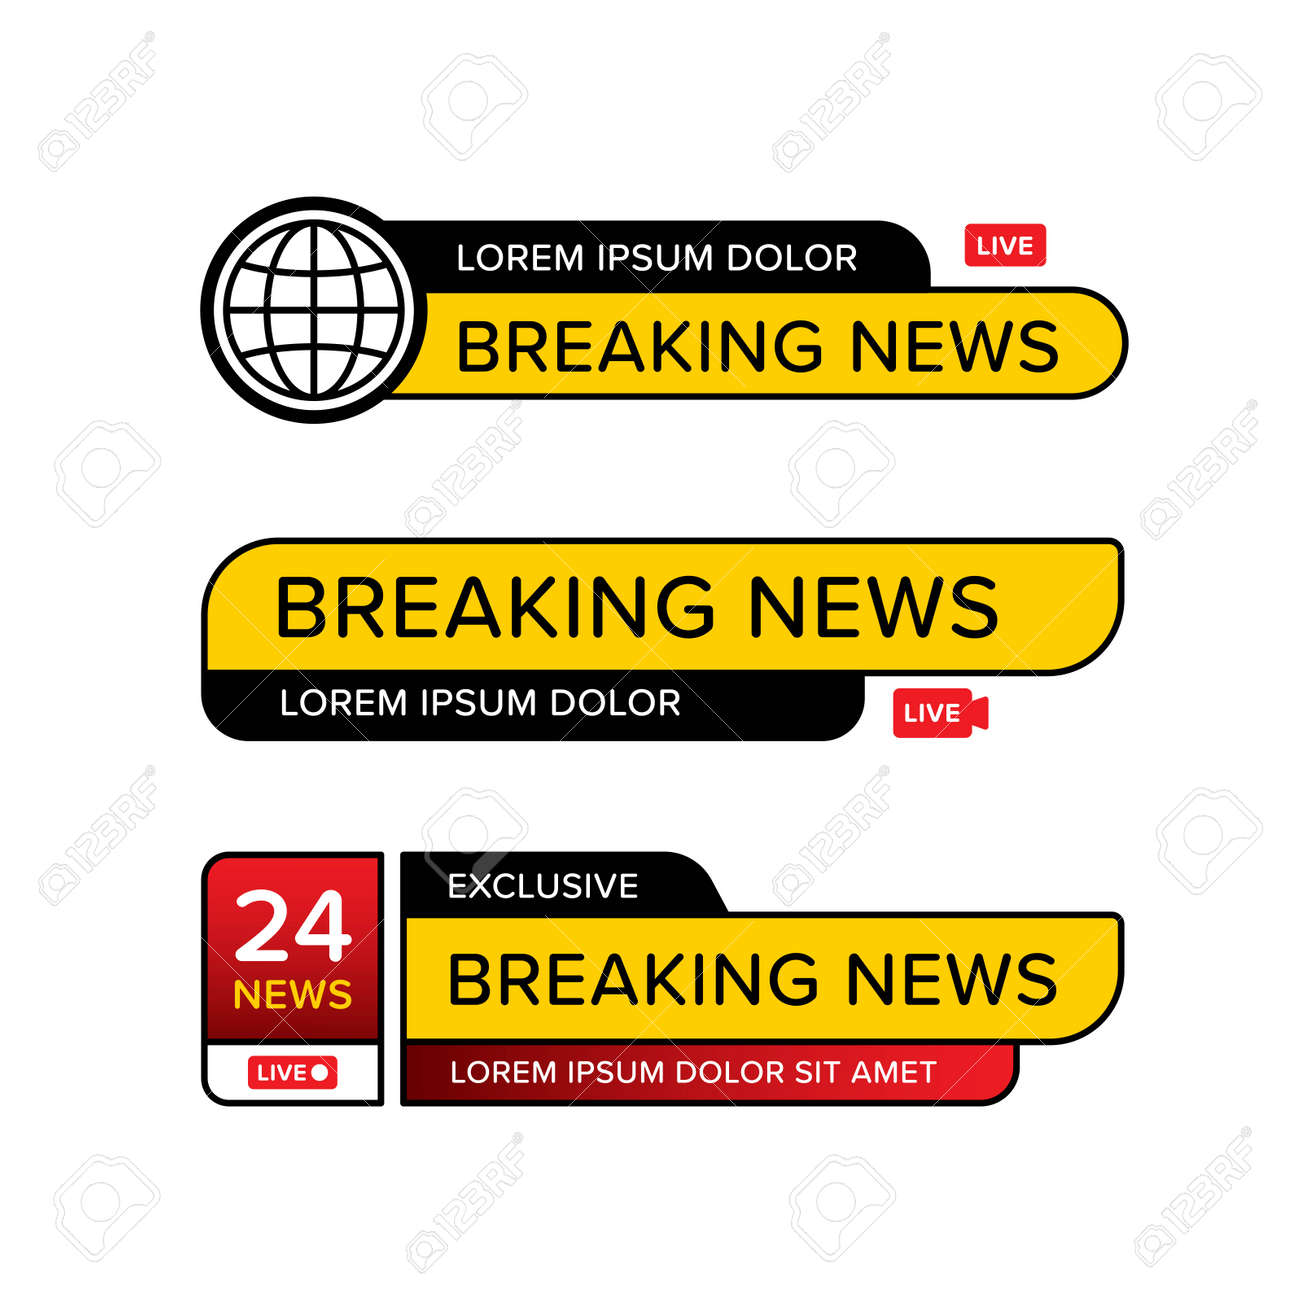 Set of breaking news banner template in various shape. Designed in different style and icon logo. Premium vector - 162381864